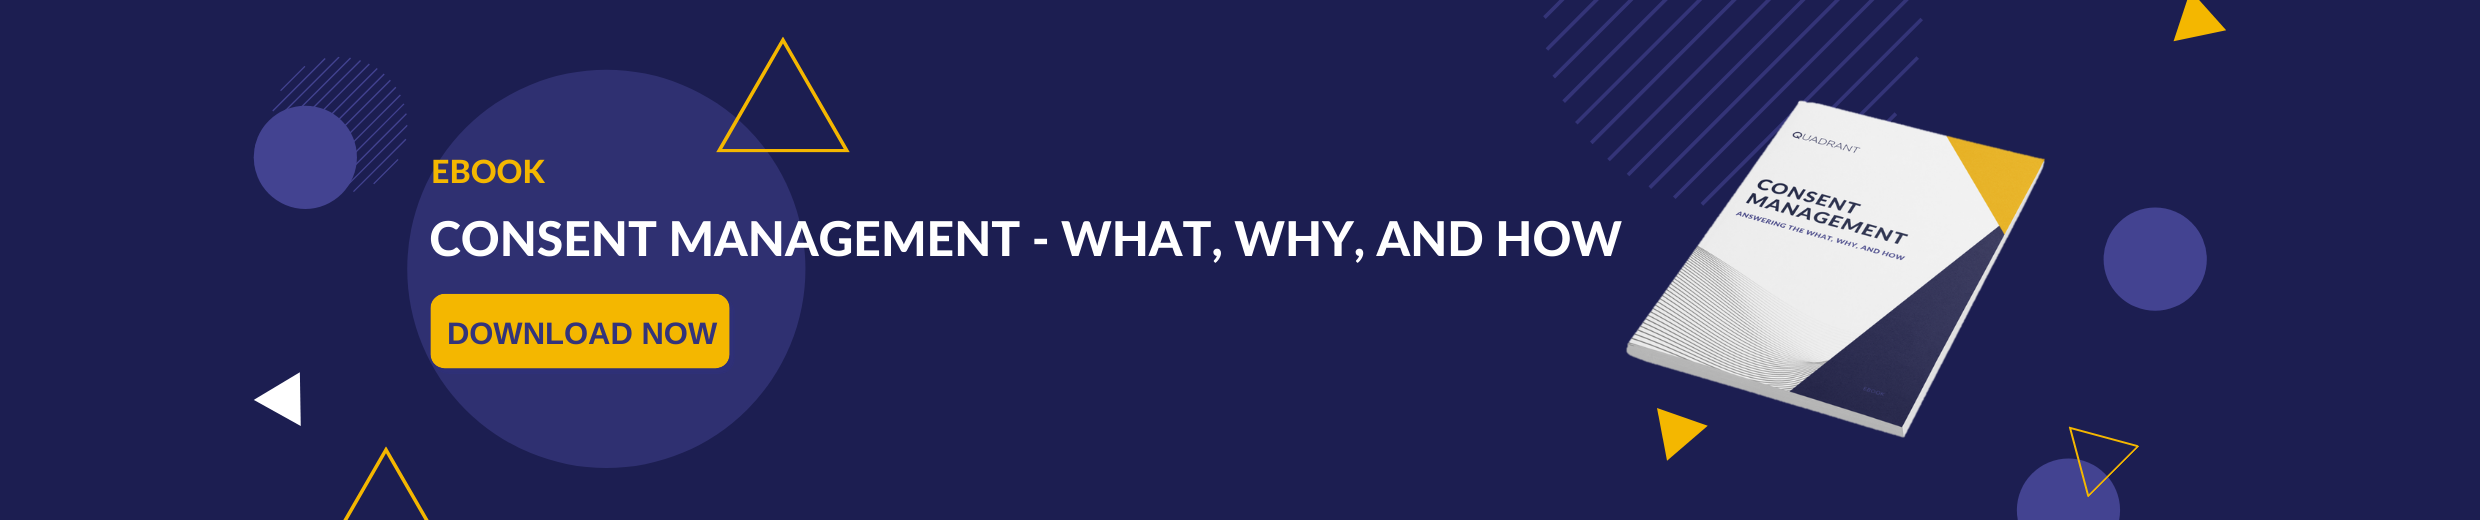 Consent Management - What, Why, and How